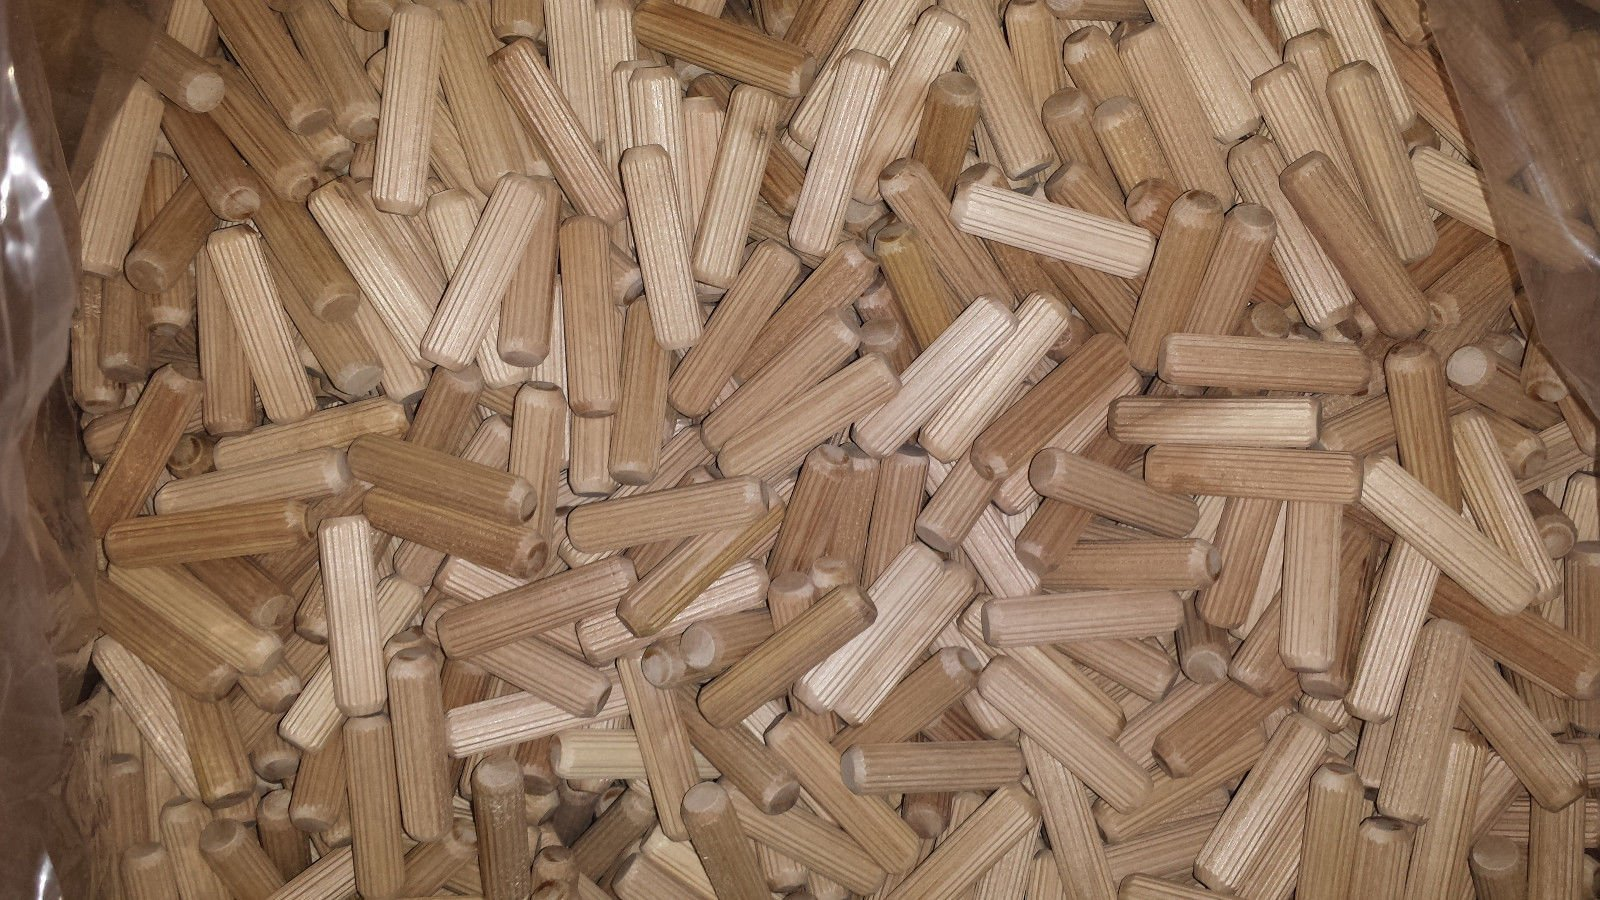 8mm x 40mm HARDWOOD MULTIGROOVE CHAMFERED WOODEN DOWELS FLUTED PINS CRAFT WOOD WORK 50